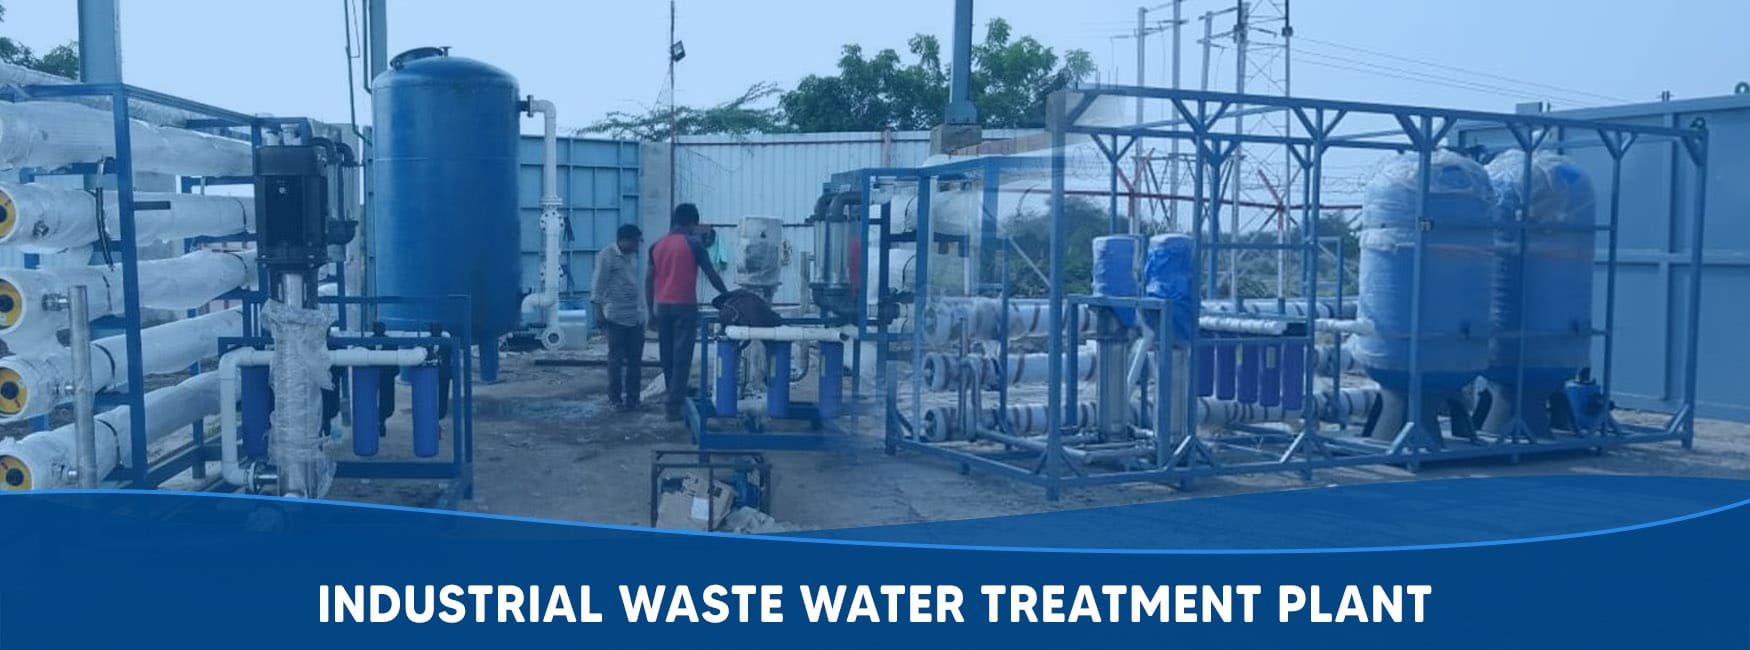 Industrial Waste Water Treatment Plant Manufacturer, Supplier and Exporter in Gujarat, India